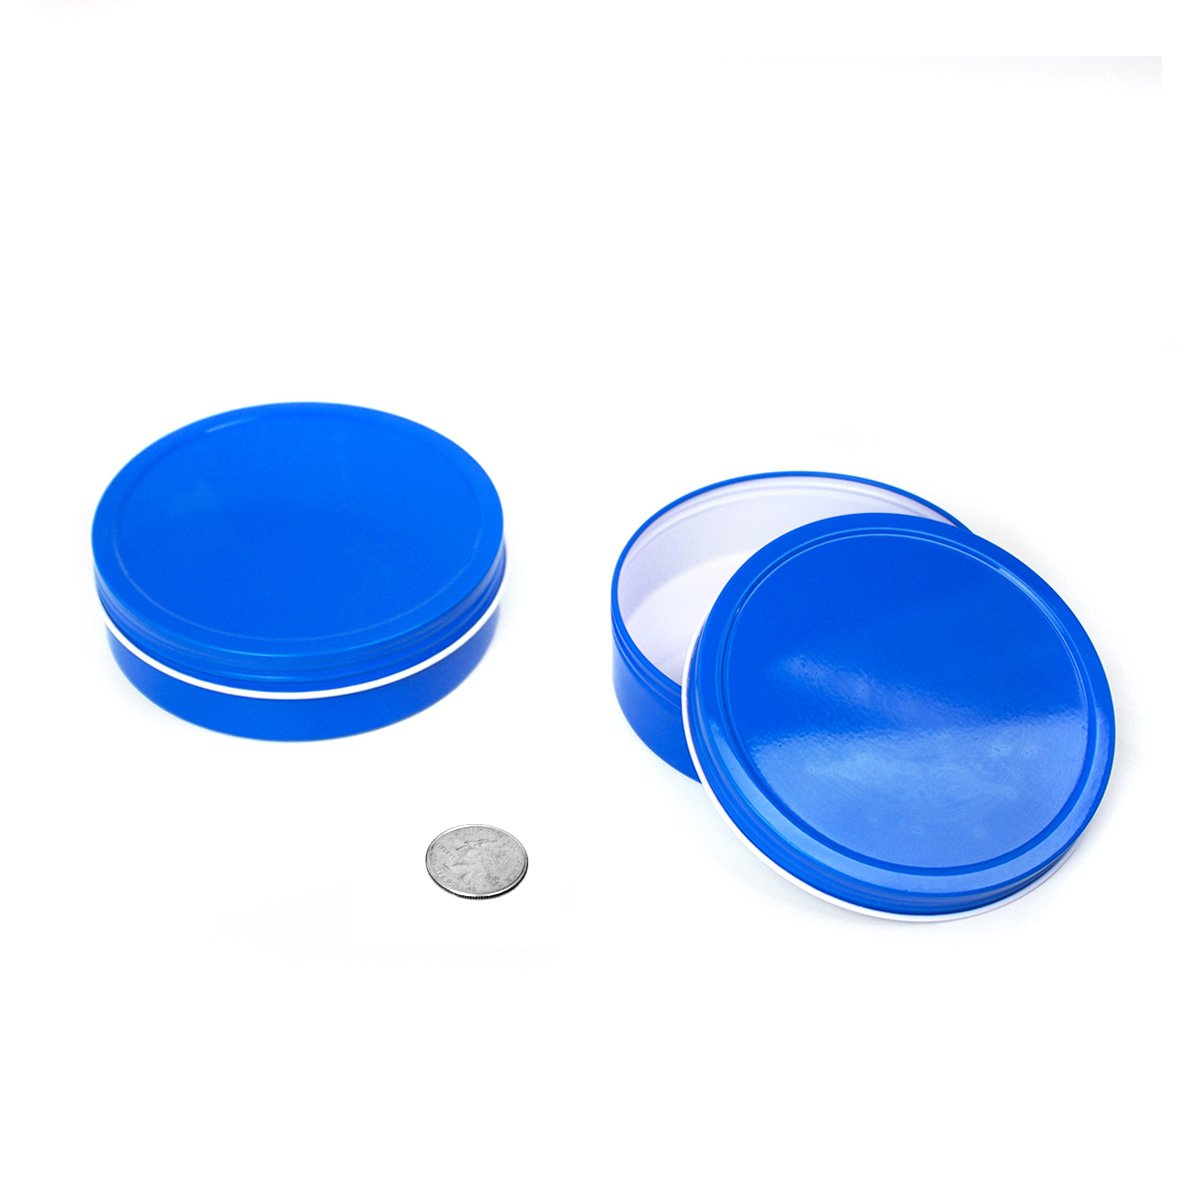 24 Piece Mimi Pack 8 oz Round Shallow Screw Top Metal Tin Container Lid Steel Containers For Spices, Candy Favors, Balms, Gels, Candles, Gifts, Storage (Blue)